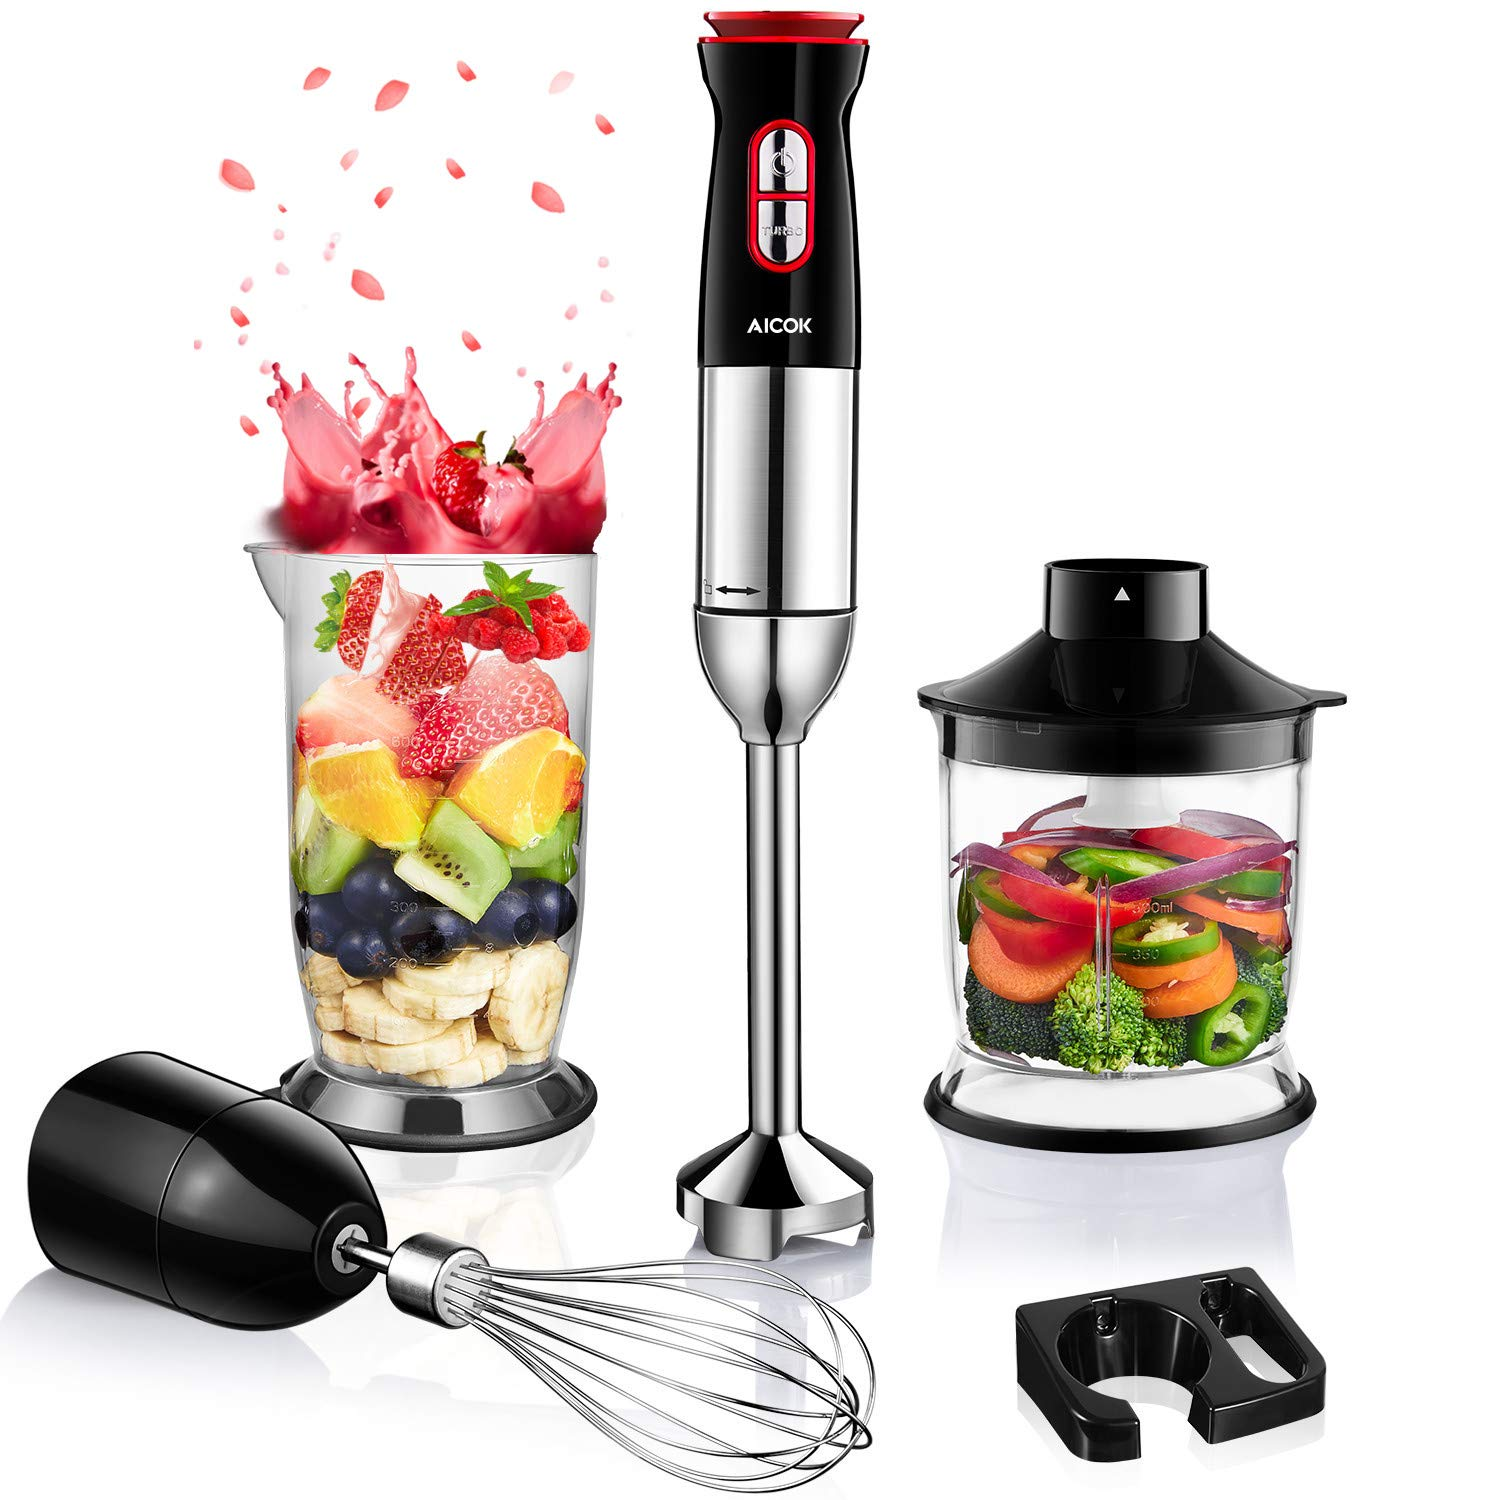 Immersion Blender, Aicok 5-in-1 Ultra-38000RPM Hand Blender Set Includes Food Chopper/ Egg Beater/ Beaker /Shaft/ Wall Bracket, 12-Speed, 304 Stainless Steel, PP Slip-Proof Ergonomic Grip, BPA-Free by AICOK